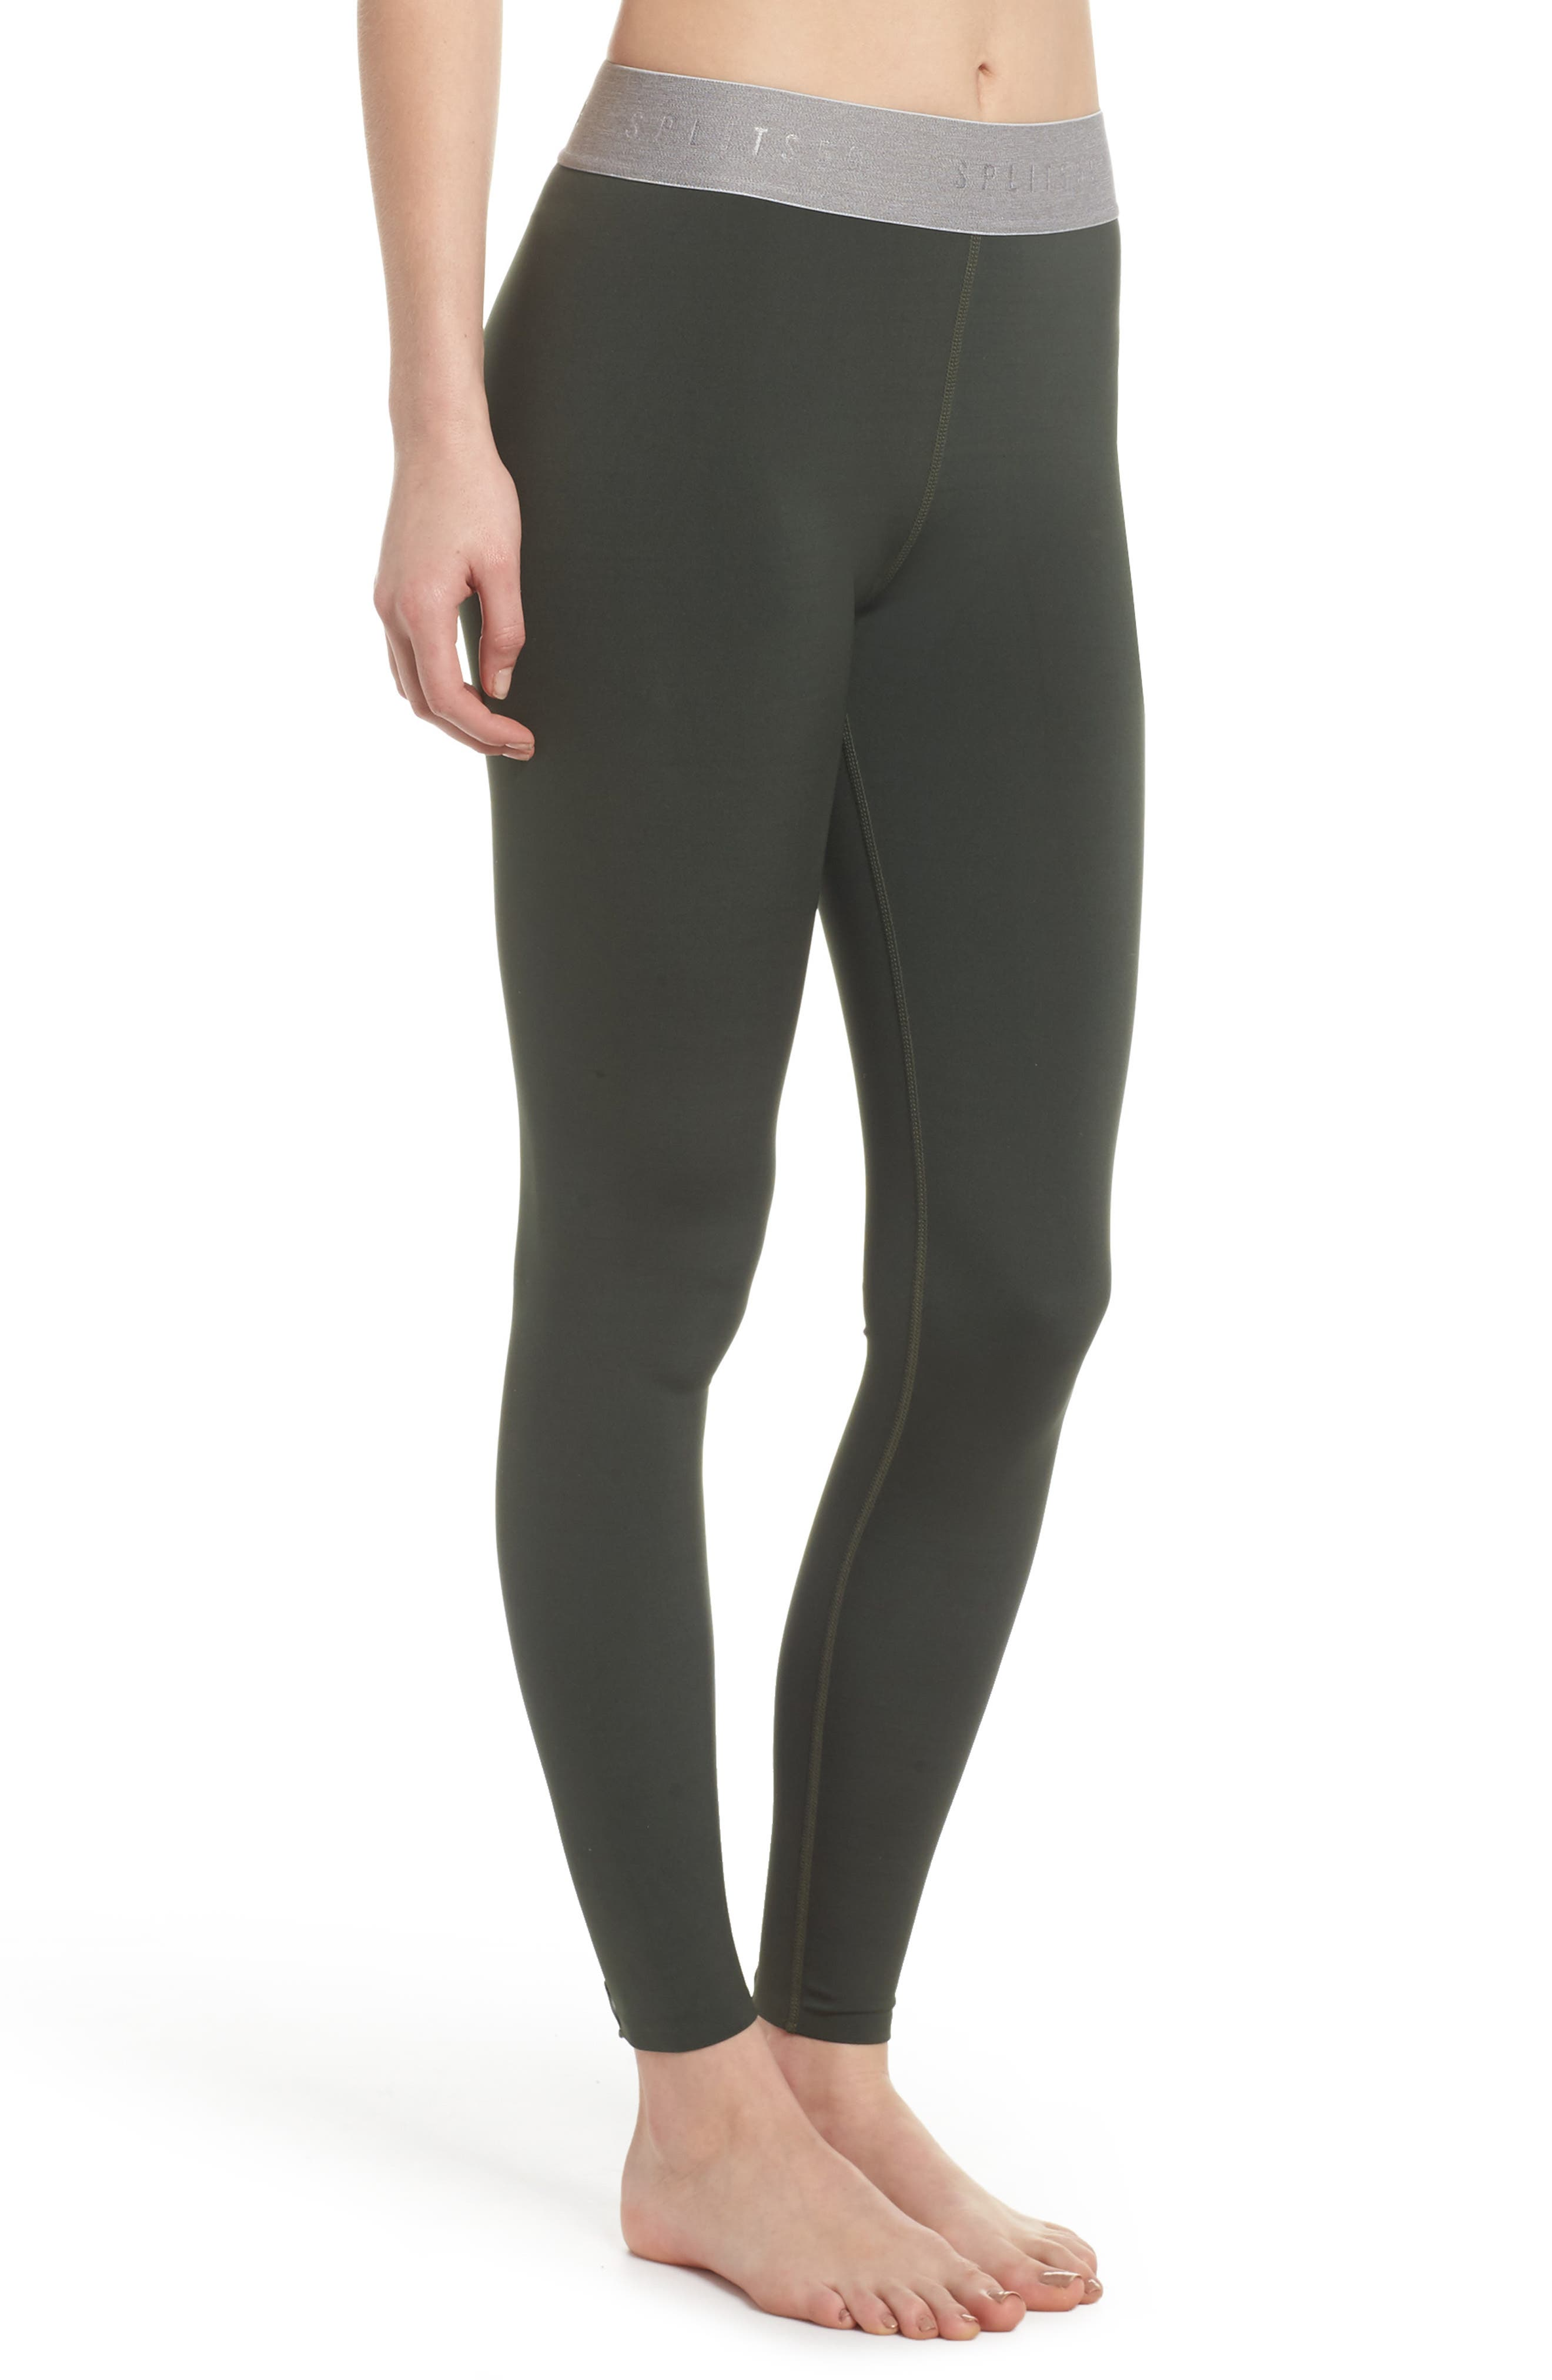 Tempo Ankle Tights,                             Alternate thumbnail 3, color,                             Army